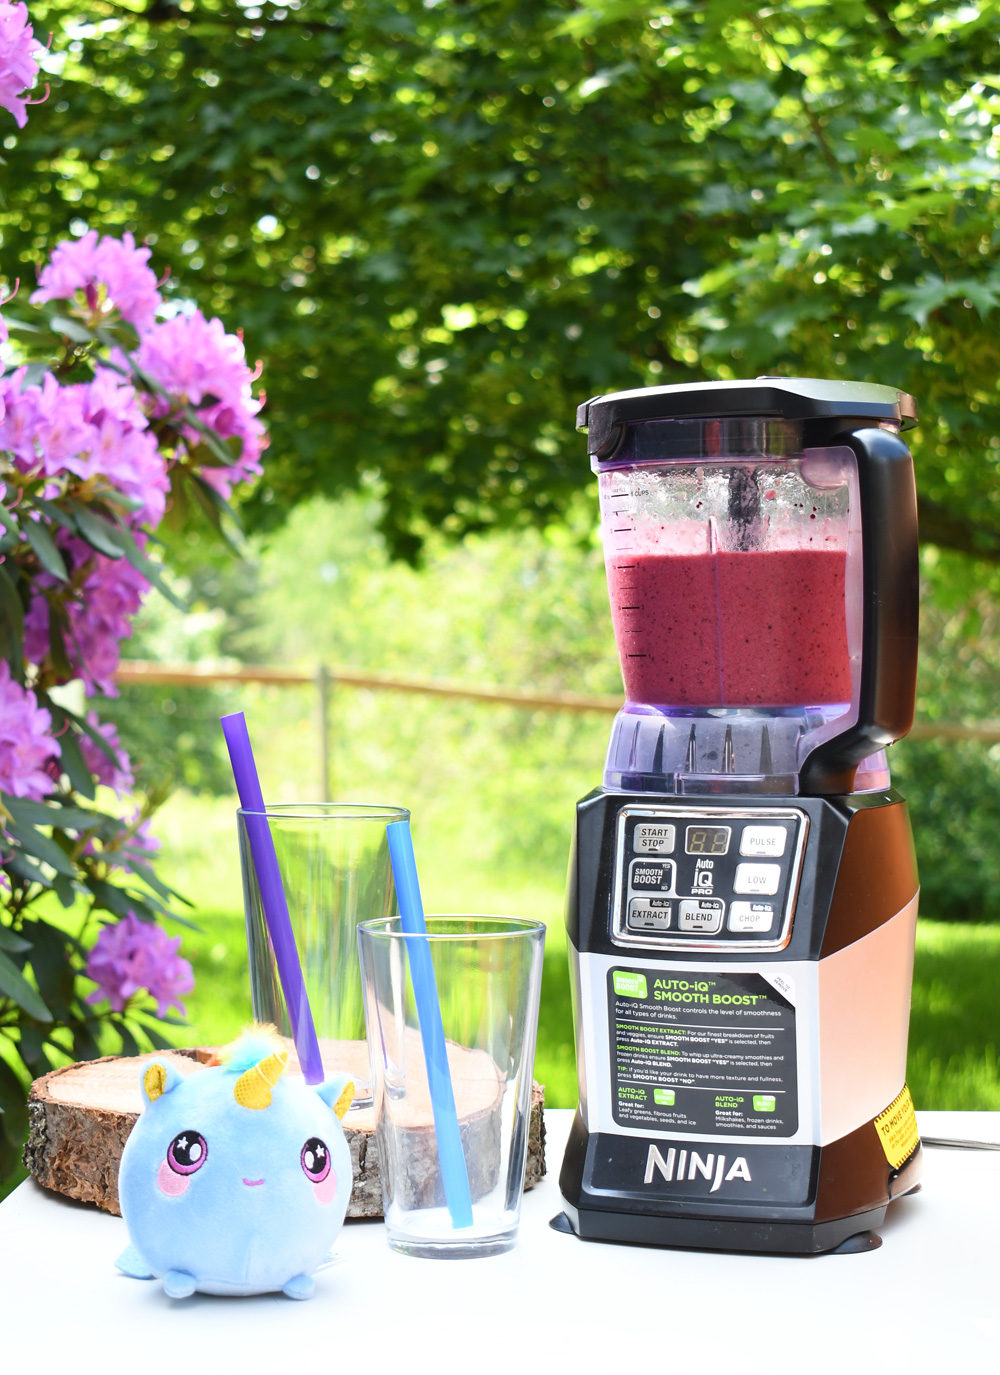 How to Make a Berry and Banana Unicorn Smoothie